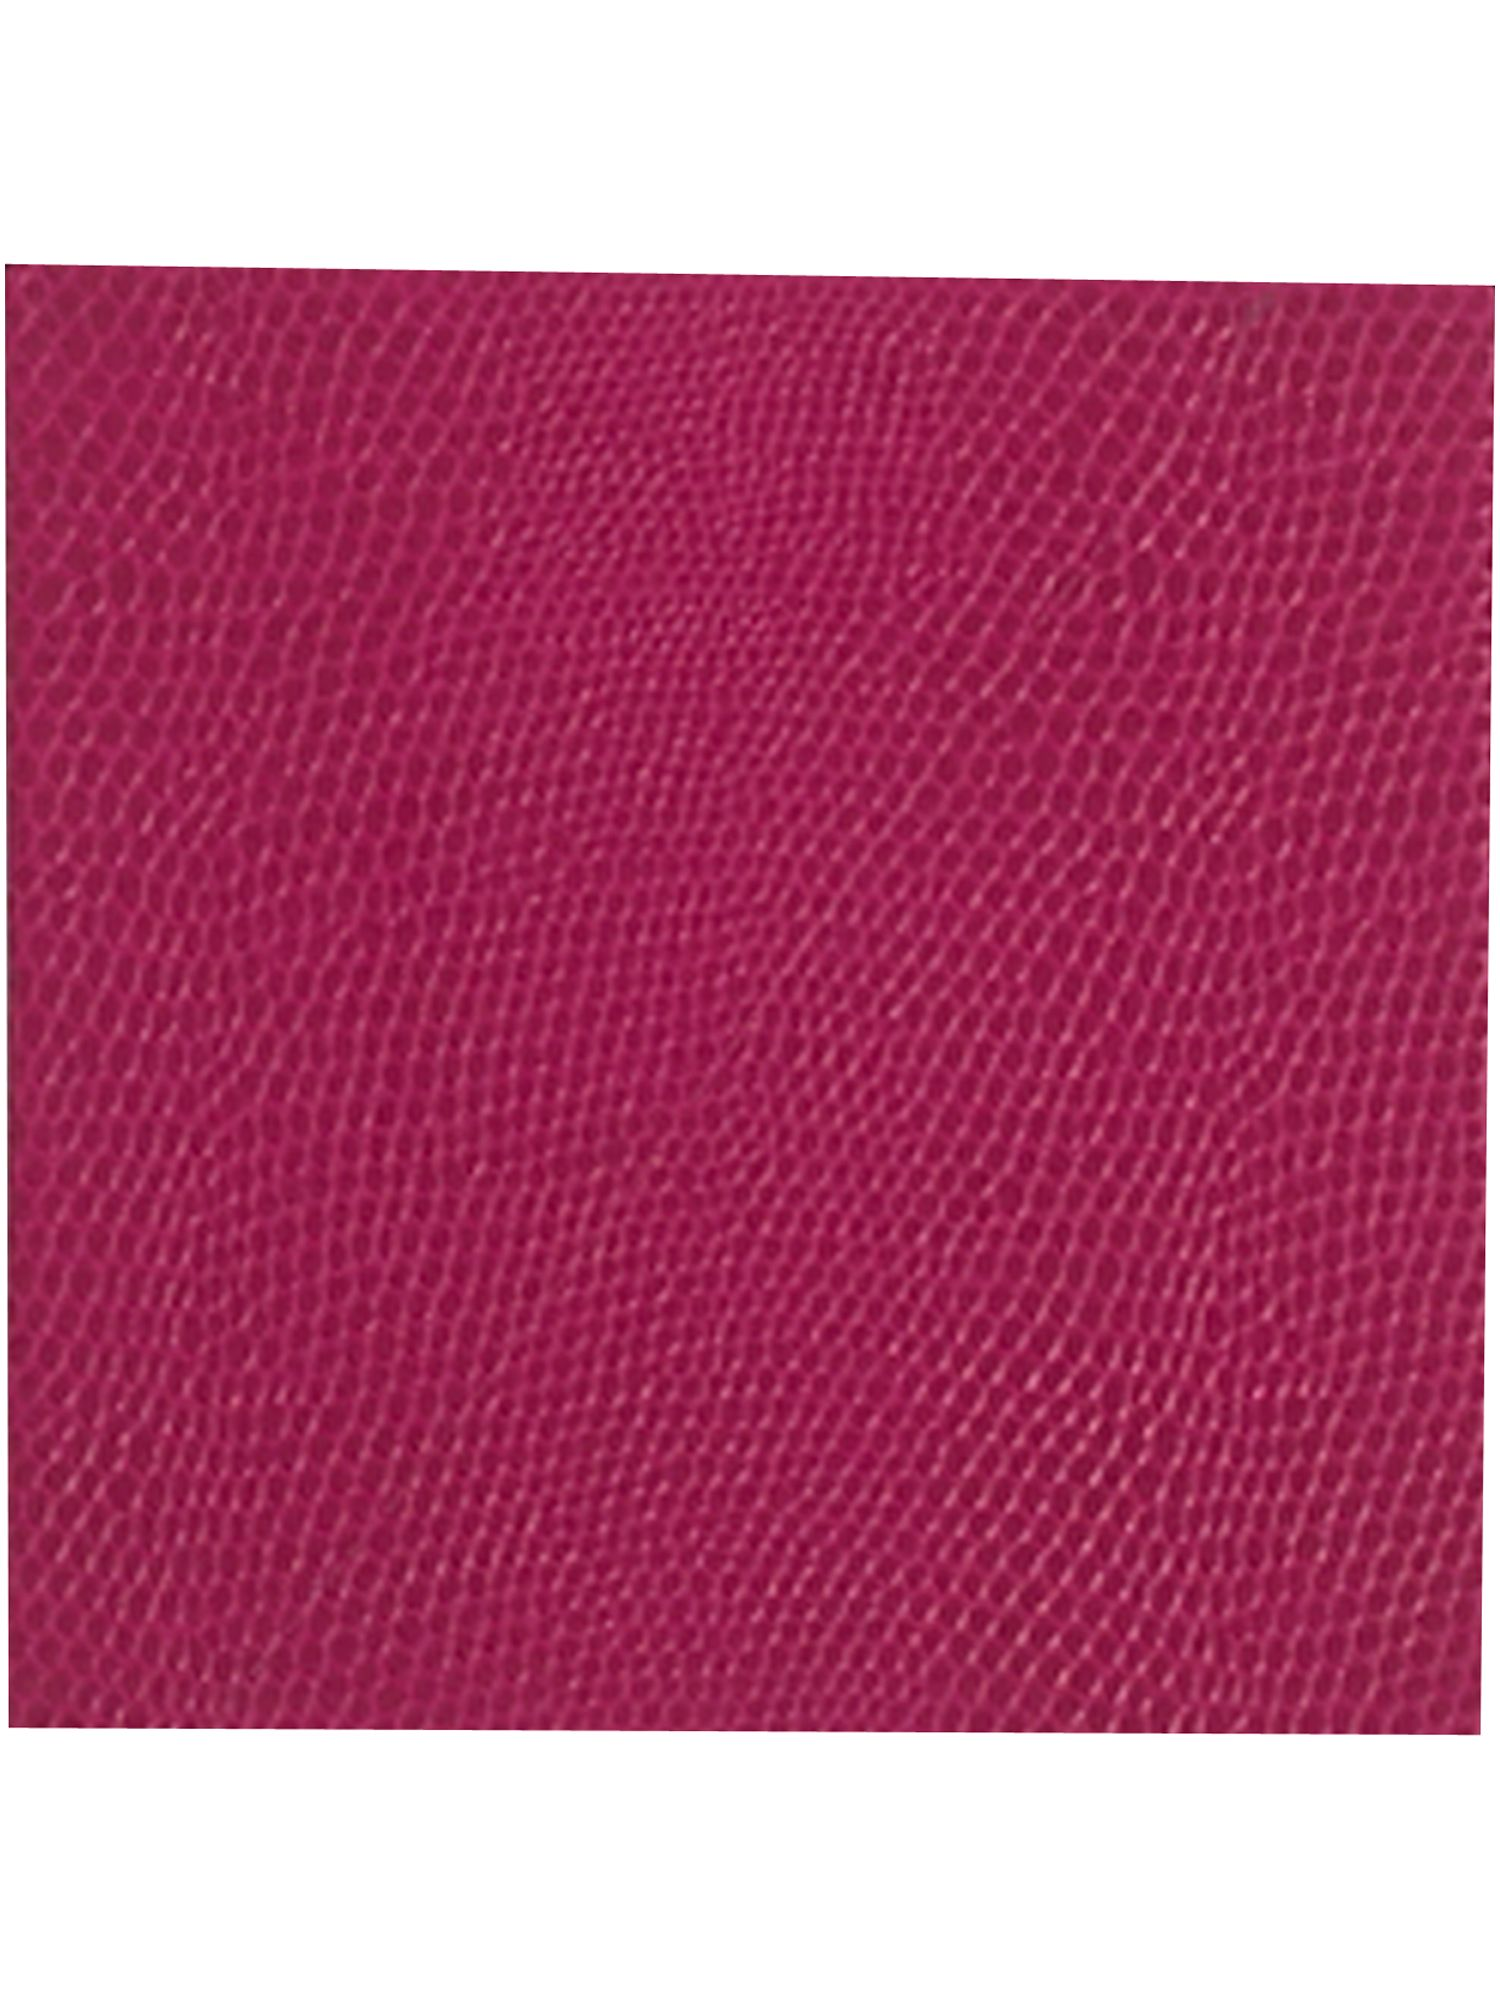 Pink snakeskin set of 4 coasters